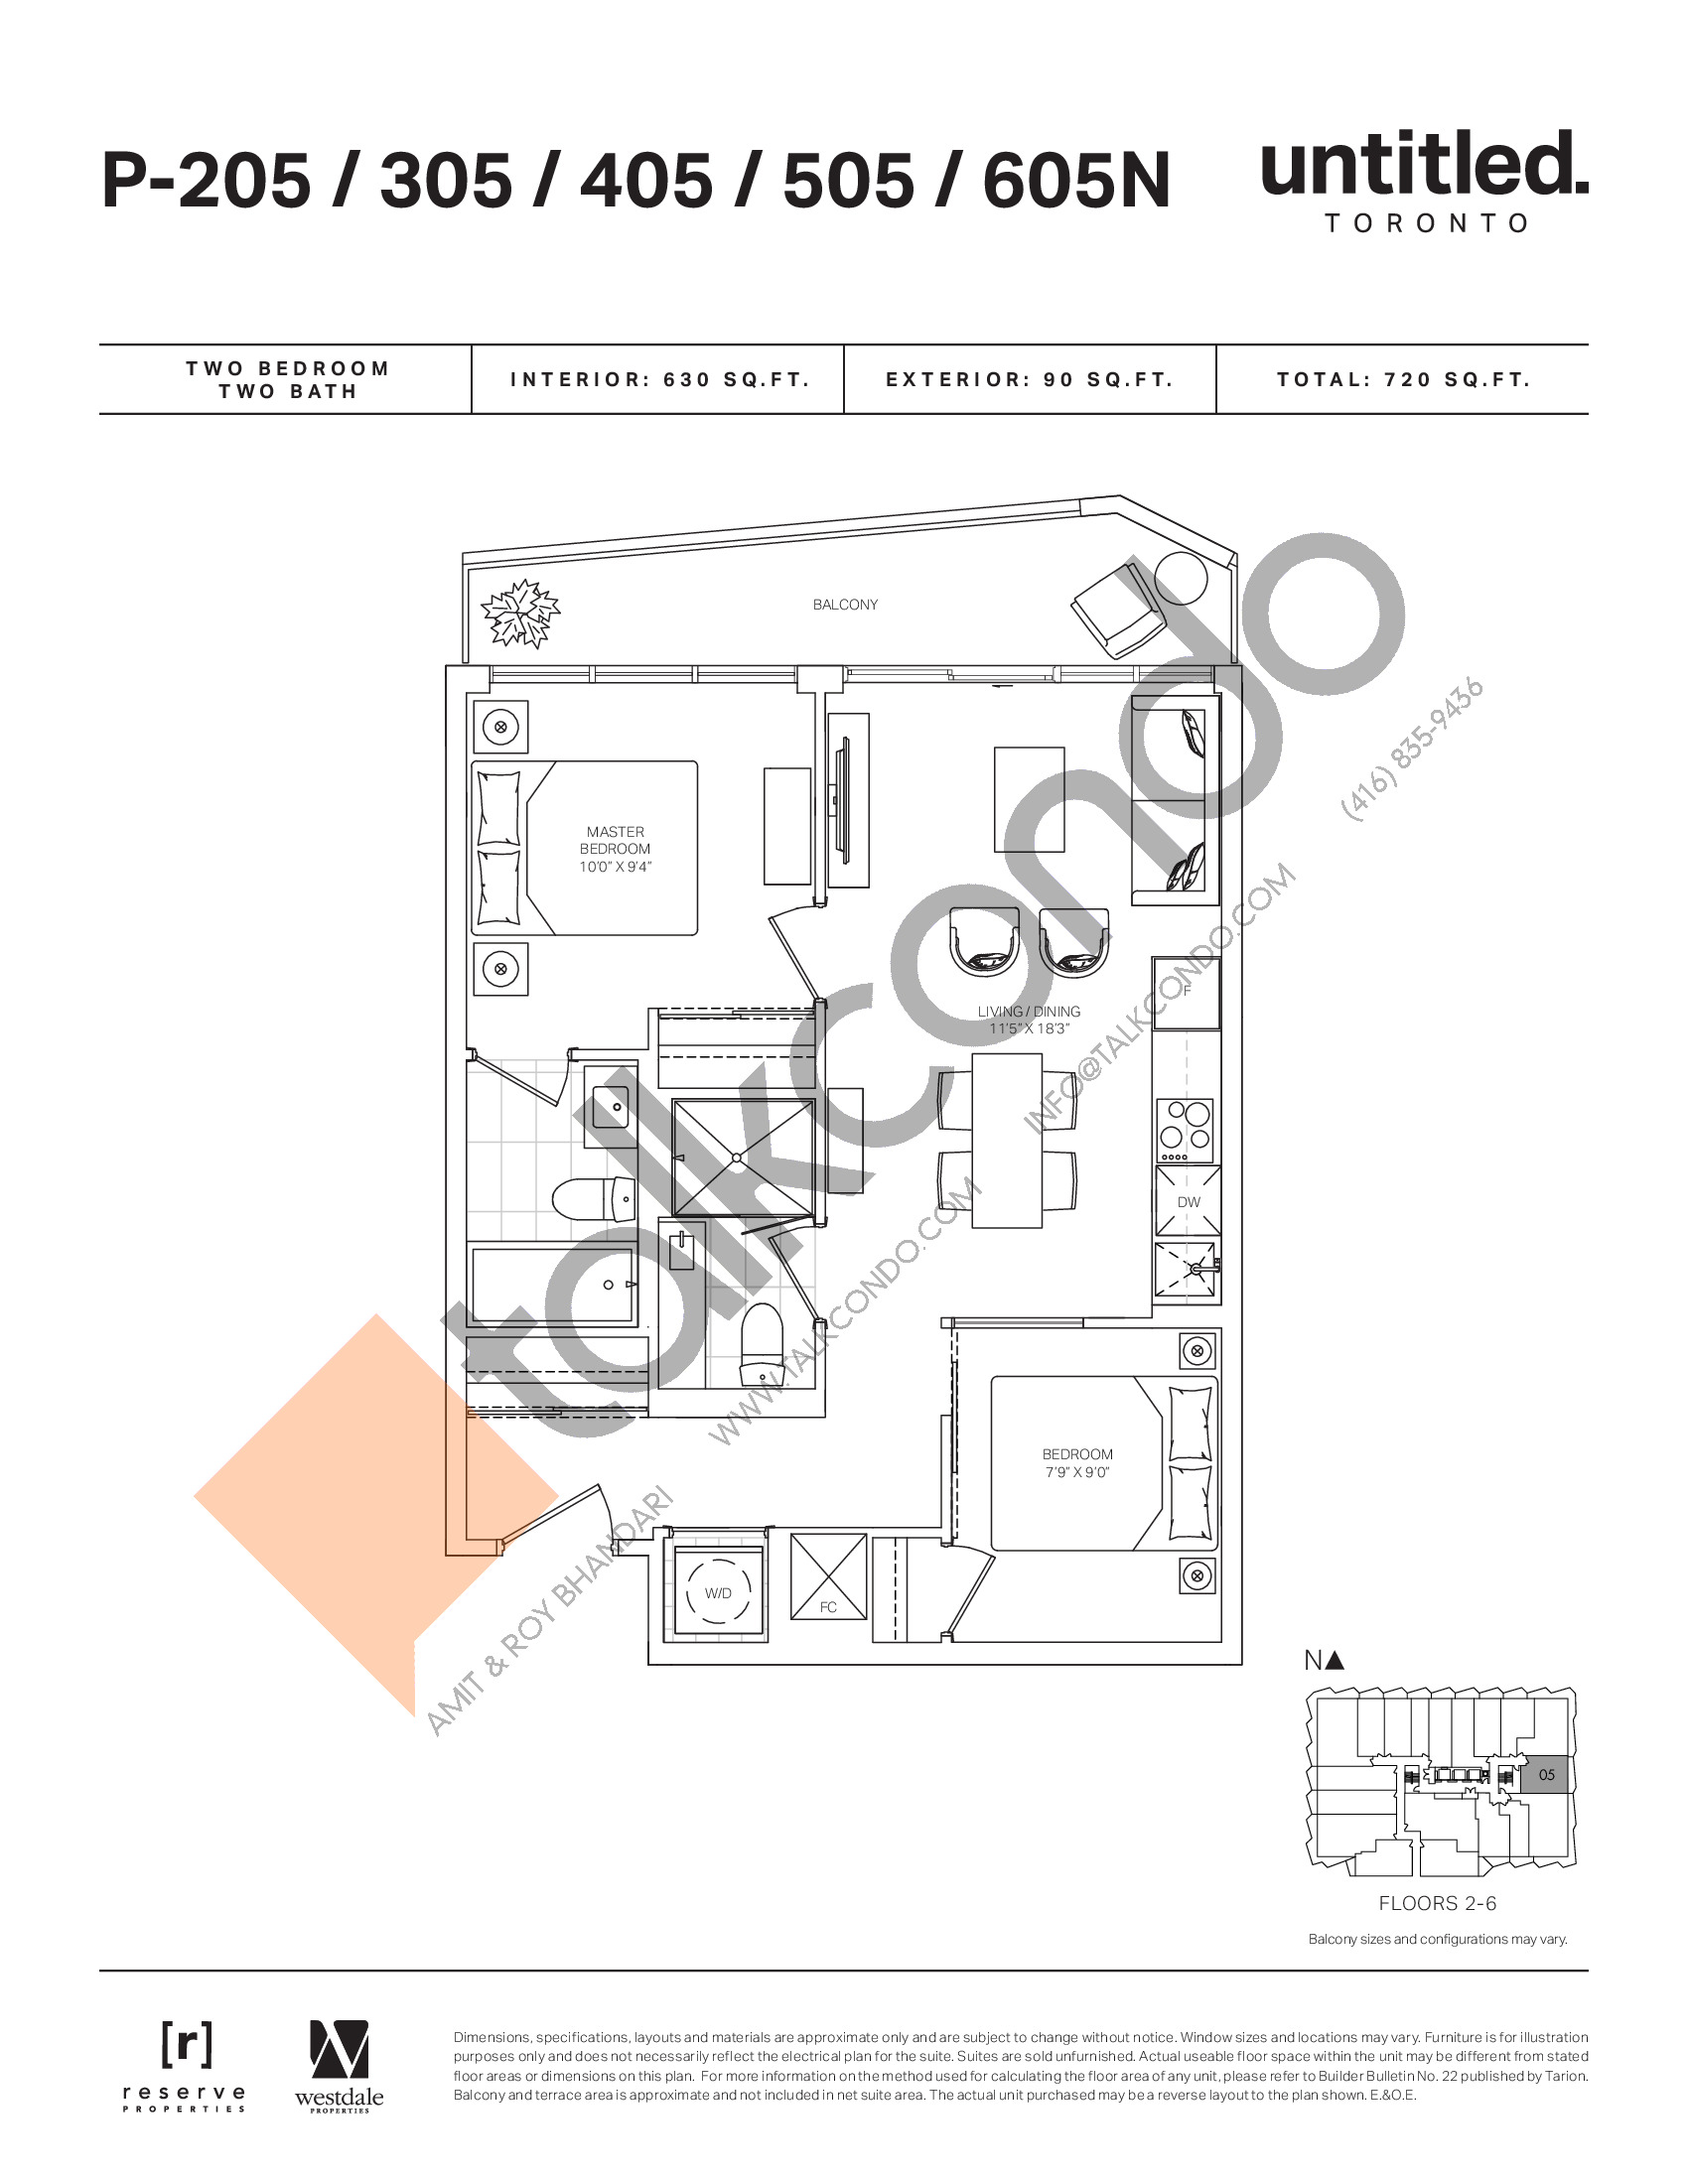 P-205/305/405/505/605N Floor Plan at Untitled North Tower Condos - 630 sq.ft